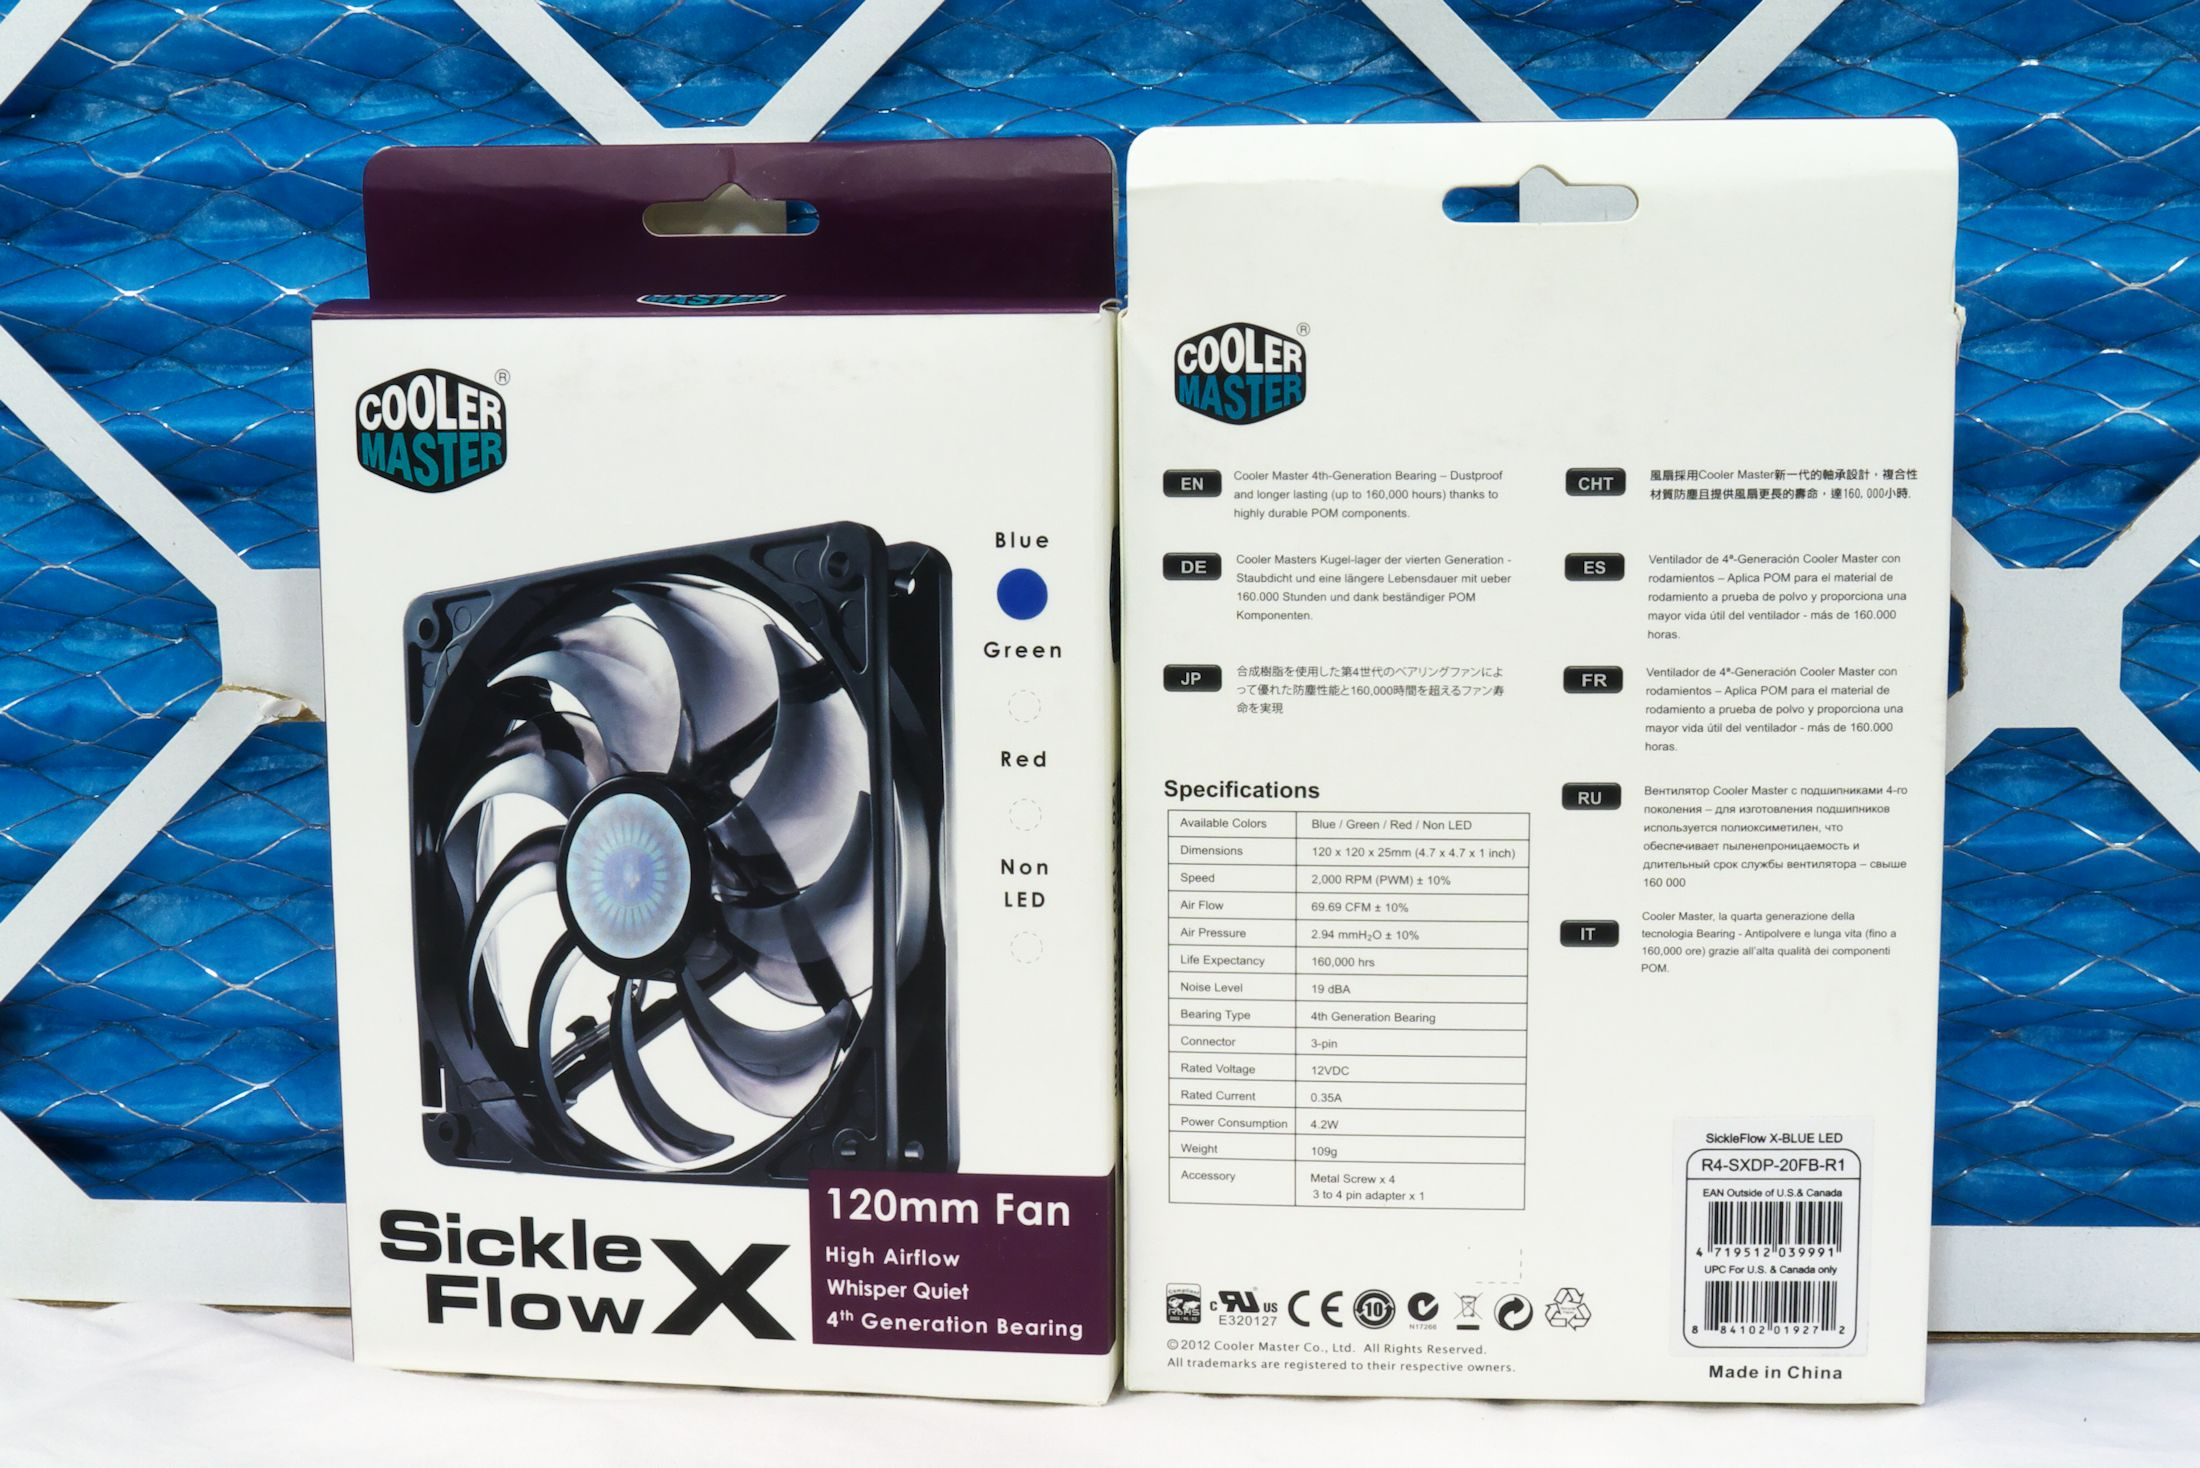 Anatomy of the Cooler Master Sickleflow X 120mm fan